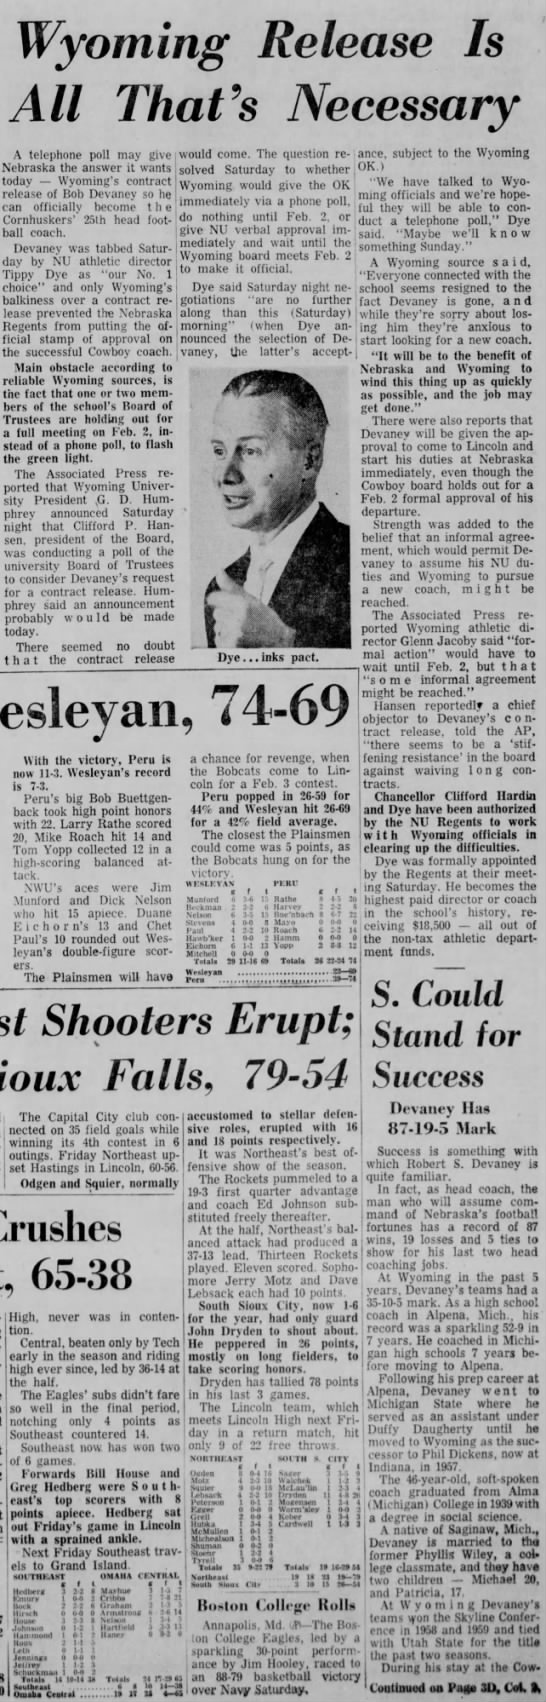 1962 Devaney hired, Wyoming release needed, LJS -